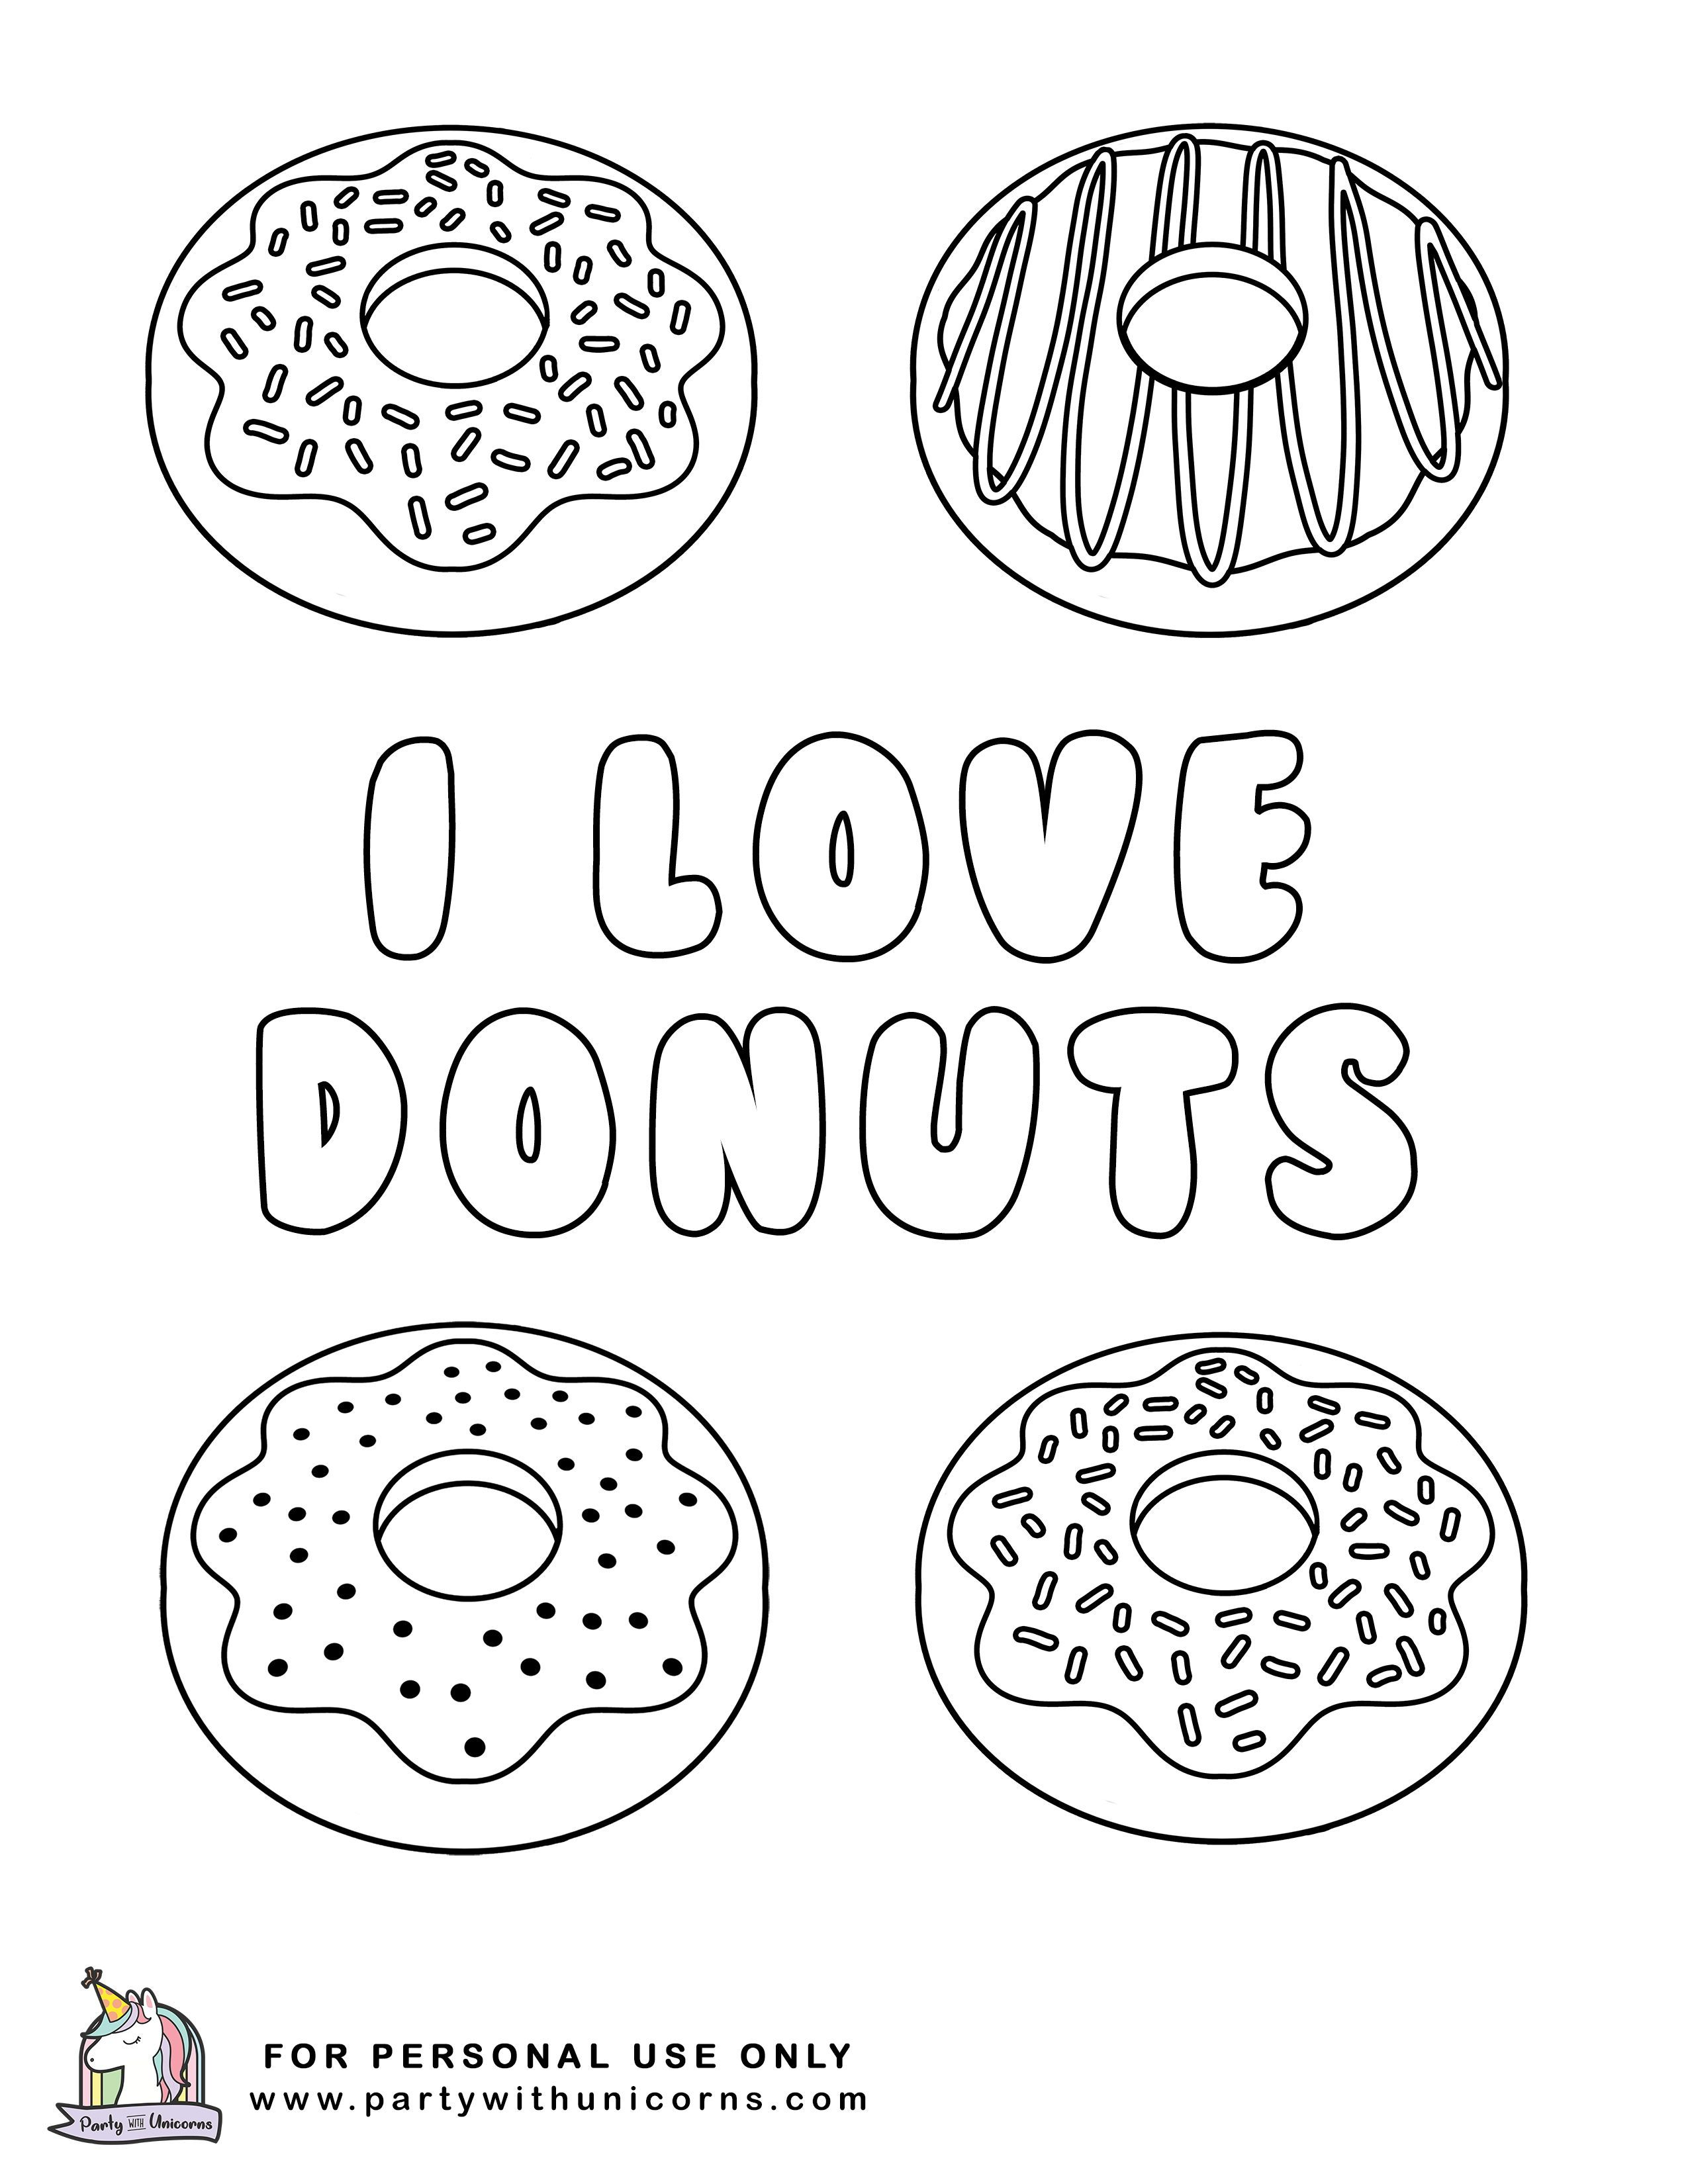 10 Donut Coloring Pages Free Download In 2020 Donut Coloring Page Free Kids Coloring Pages Coloring Pages